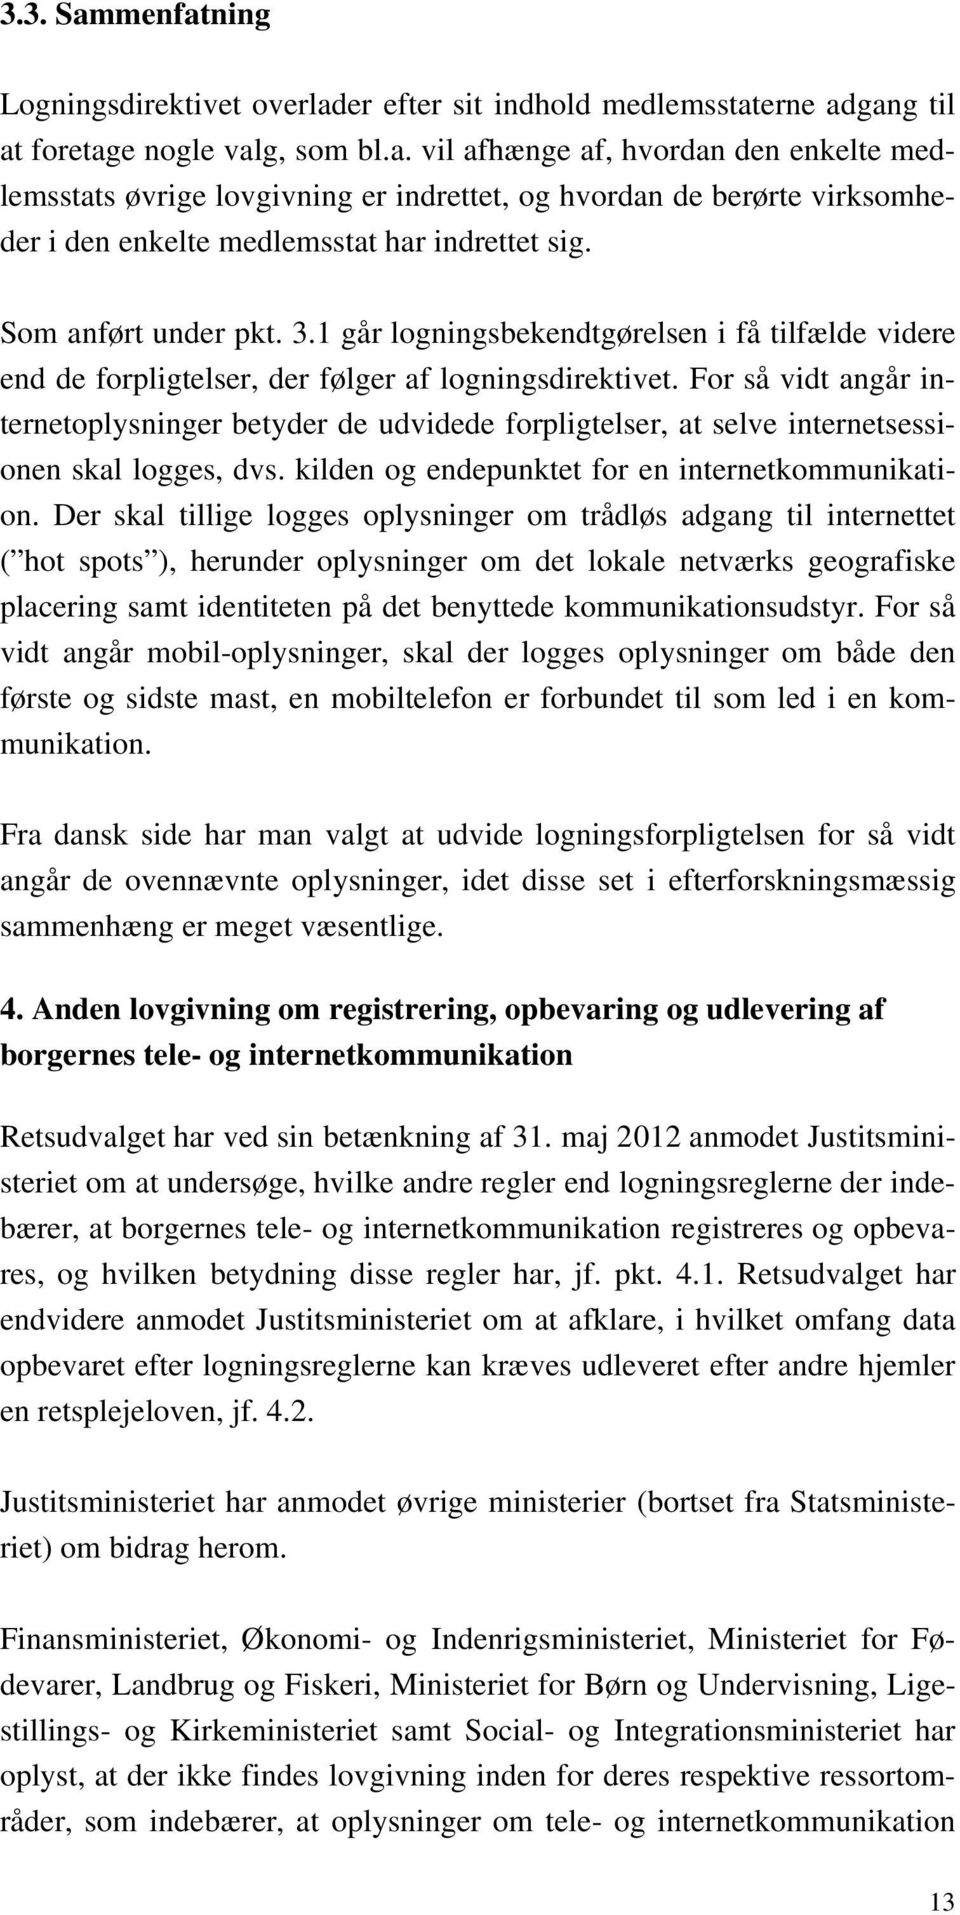 For så vidt angår internetoplysninger betyder de udvidede forpligtelser, at selve internetsessionen skal logges, dvs. kilden og endepunktet for en internetkommunikation.